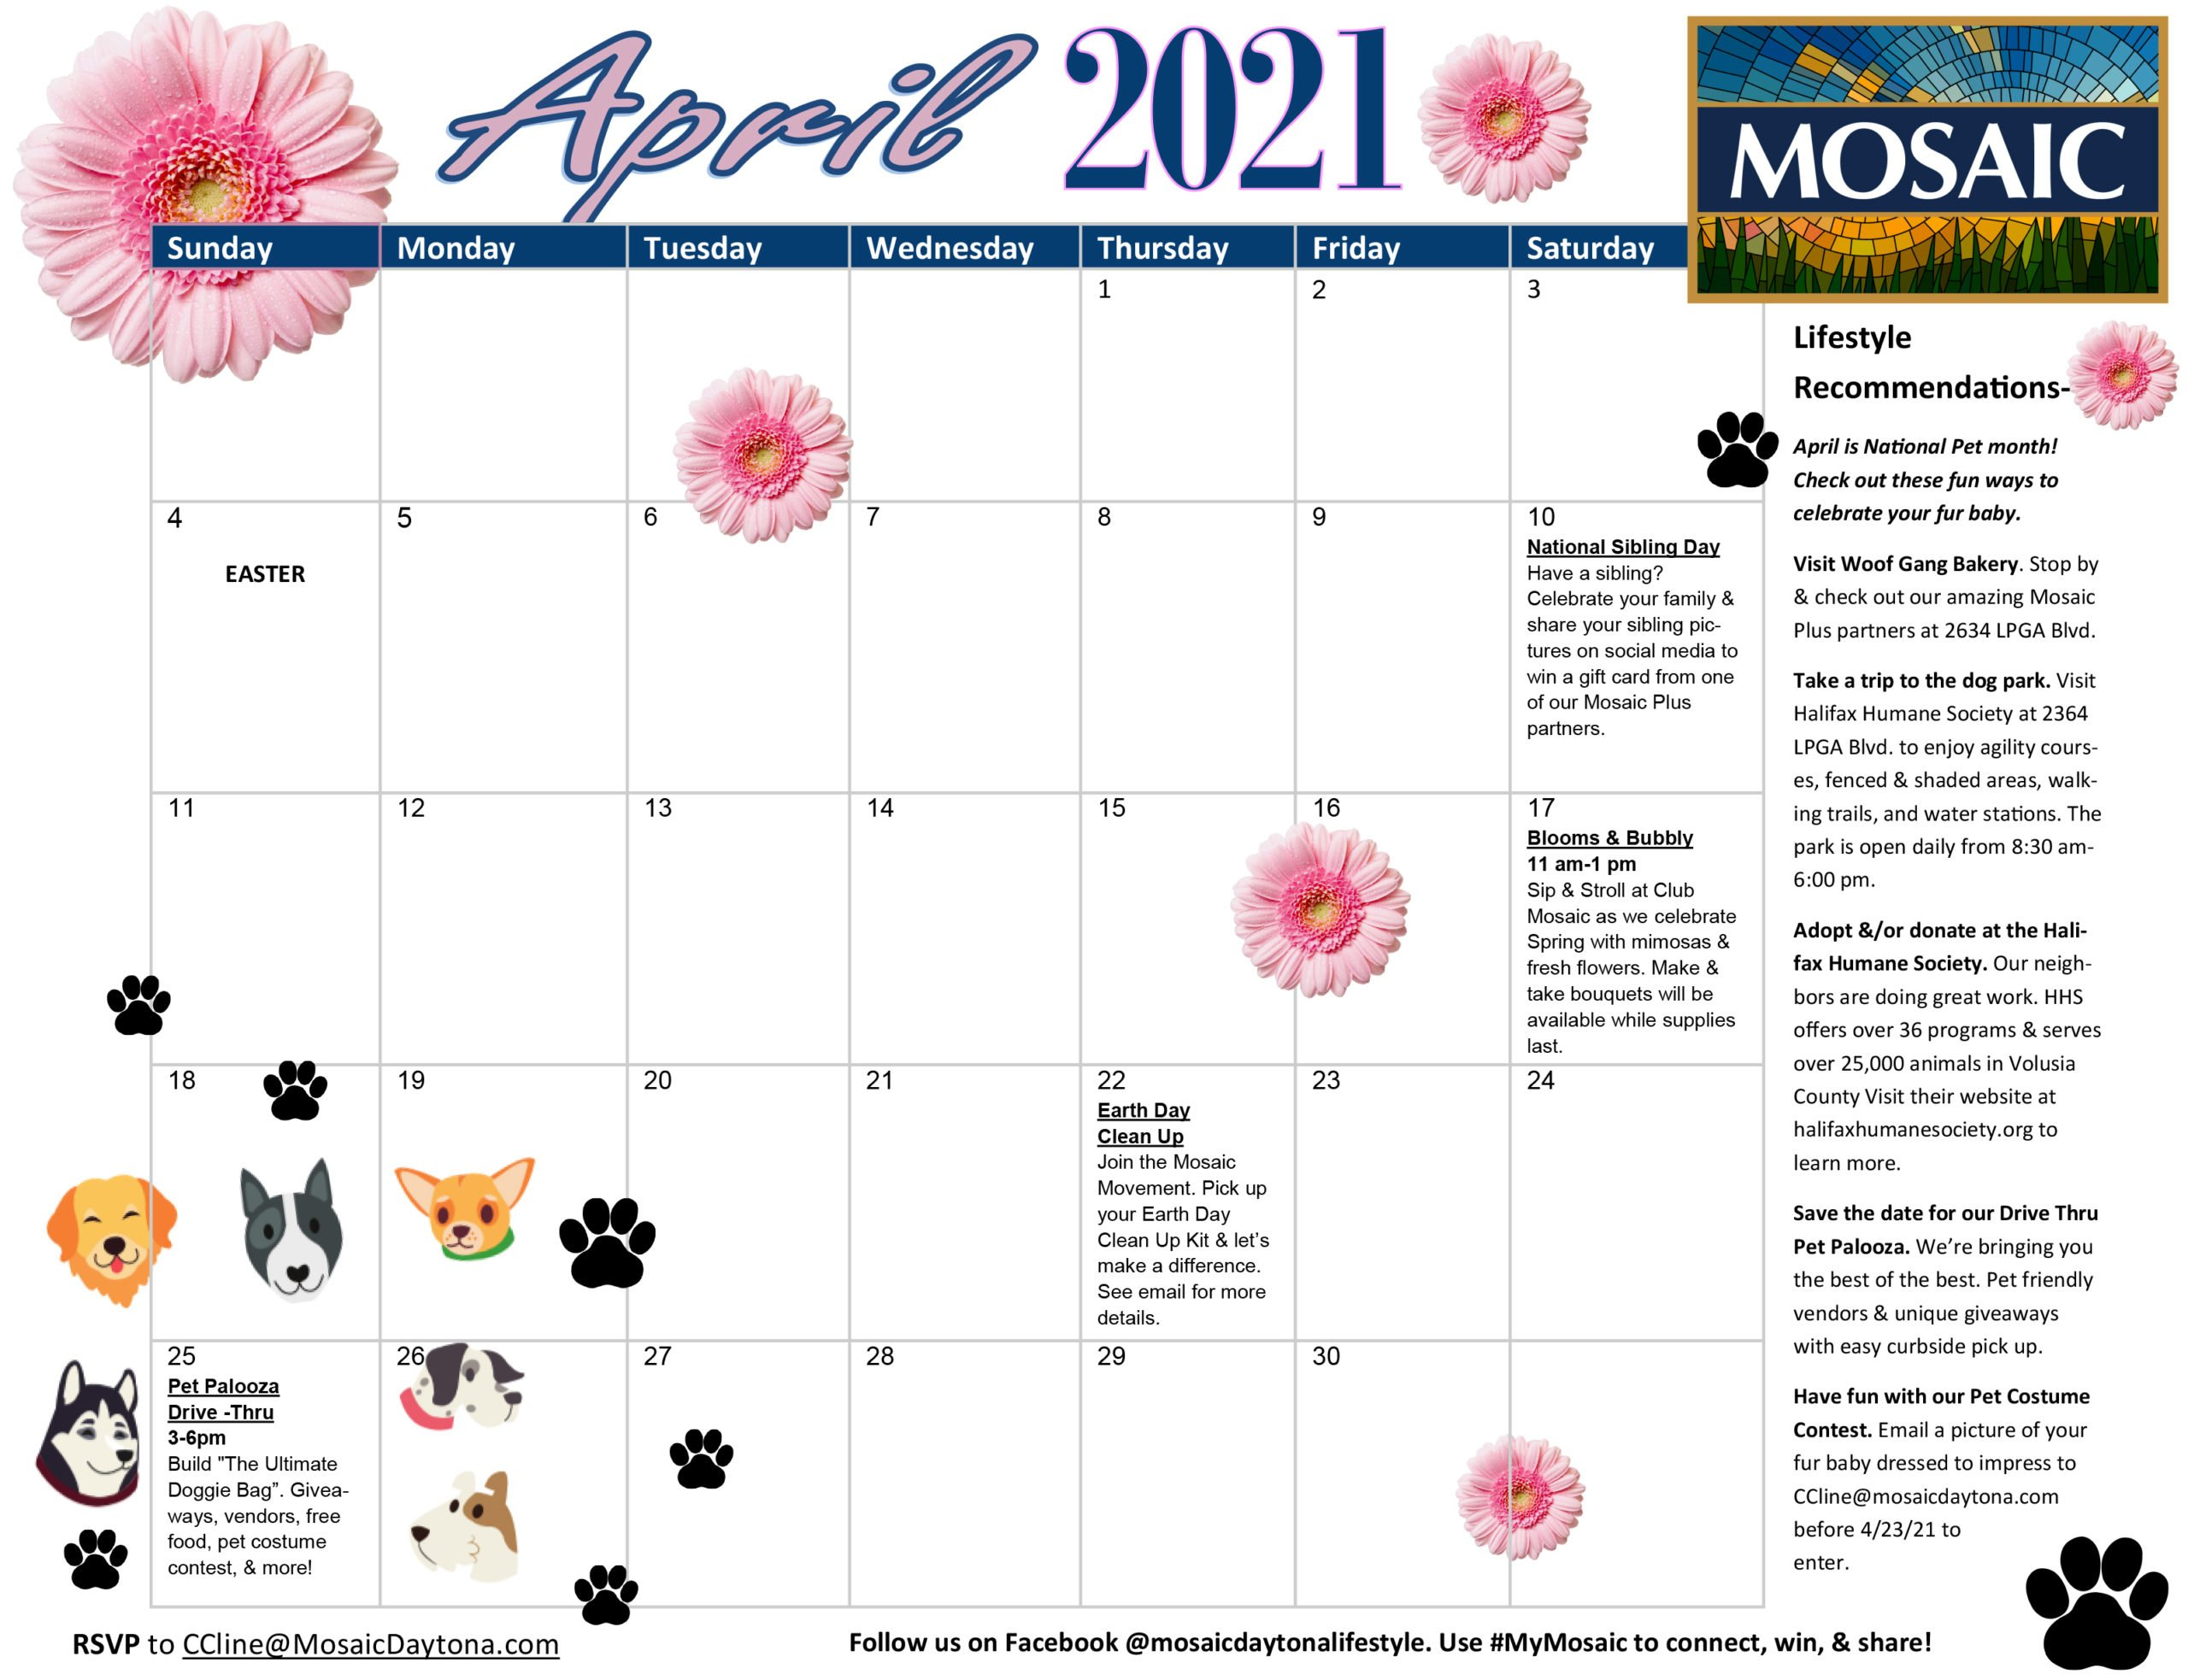 Events at Mosaic - APR 21 Calendar scaled